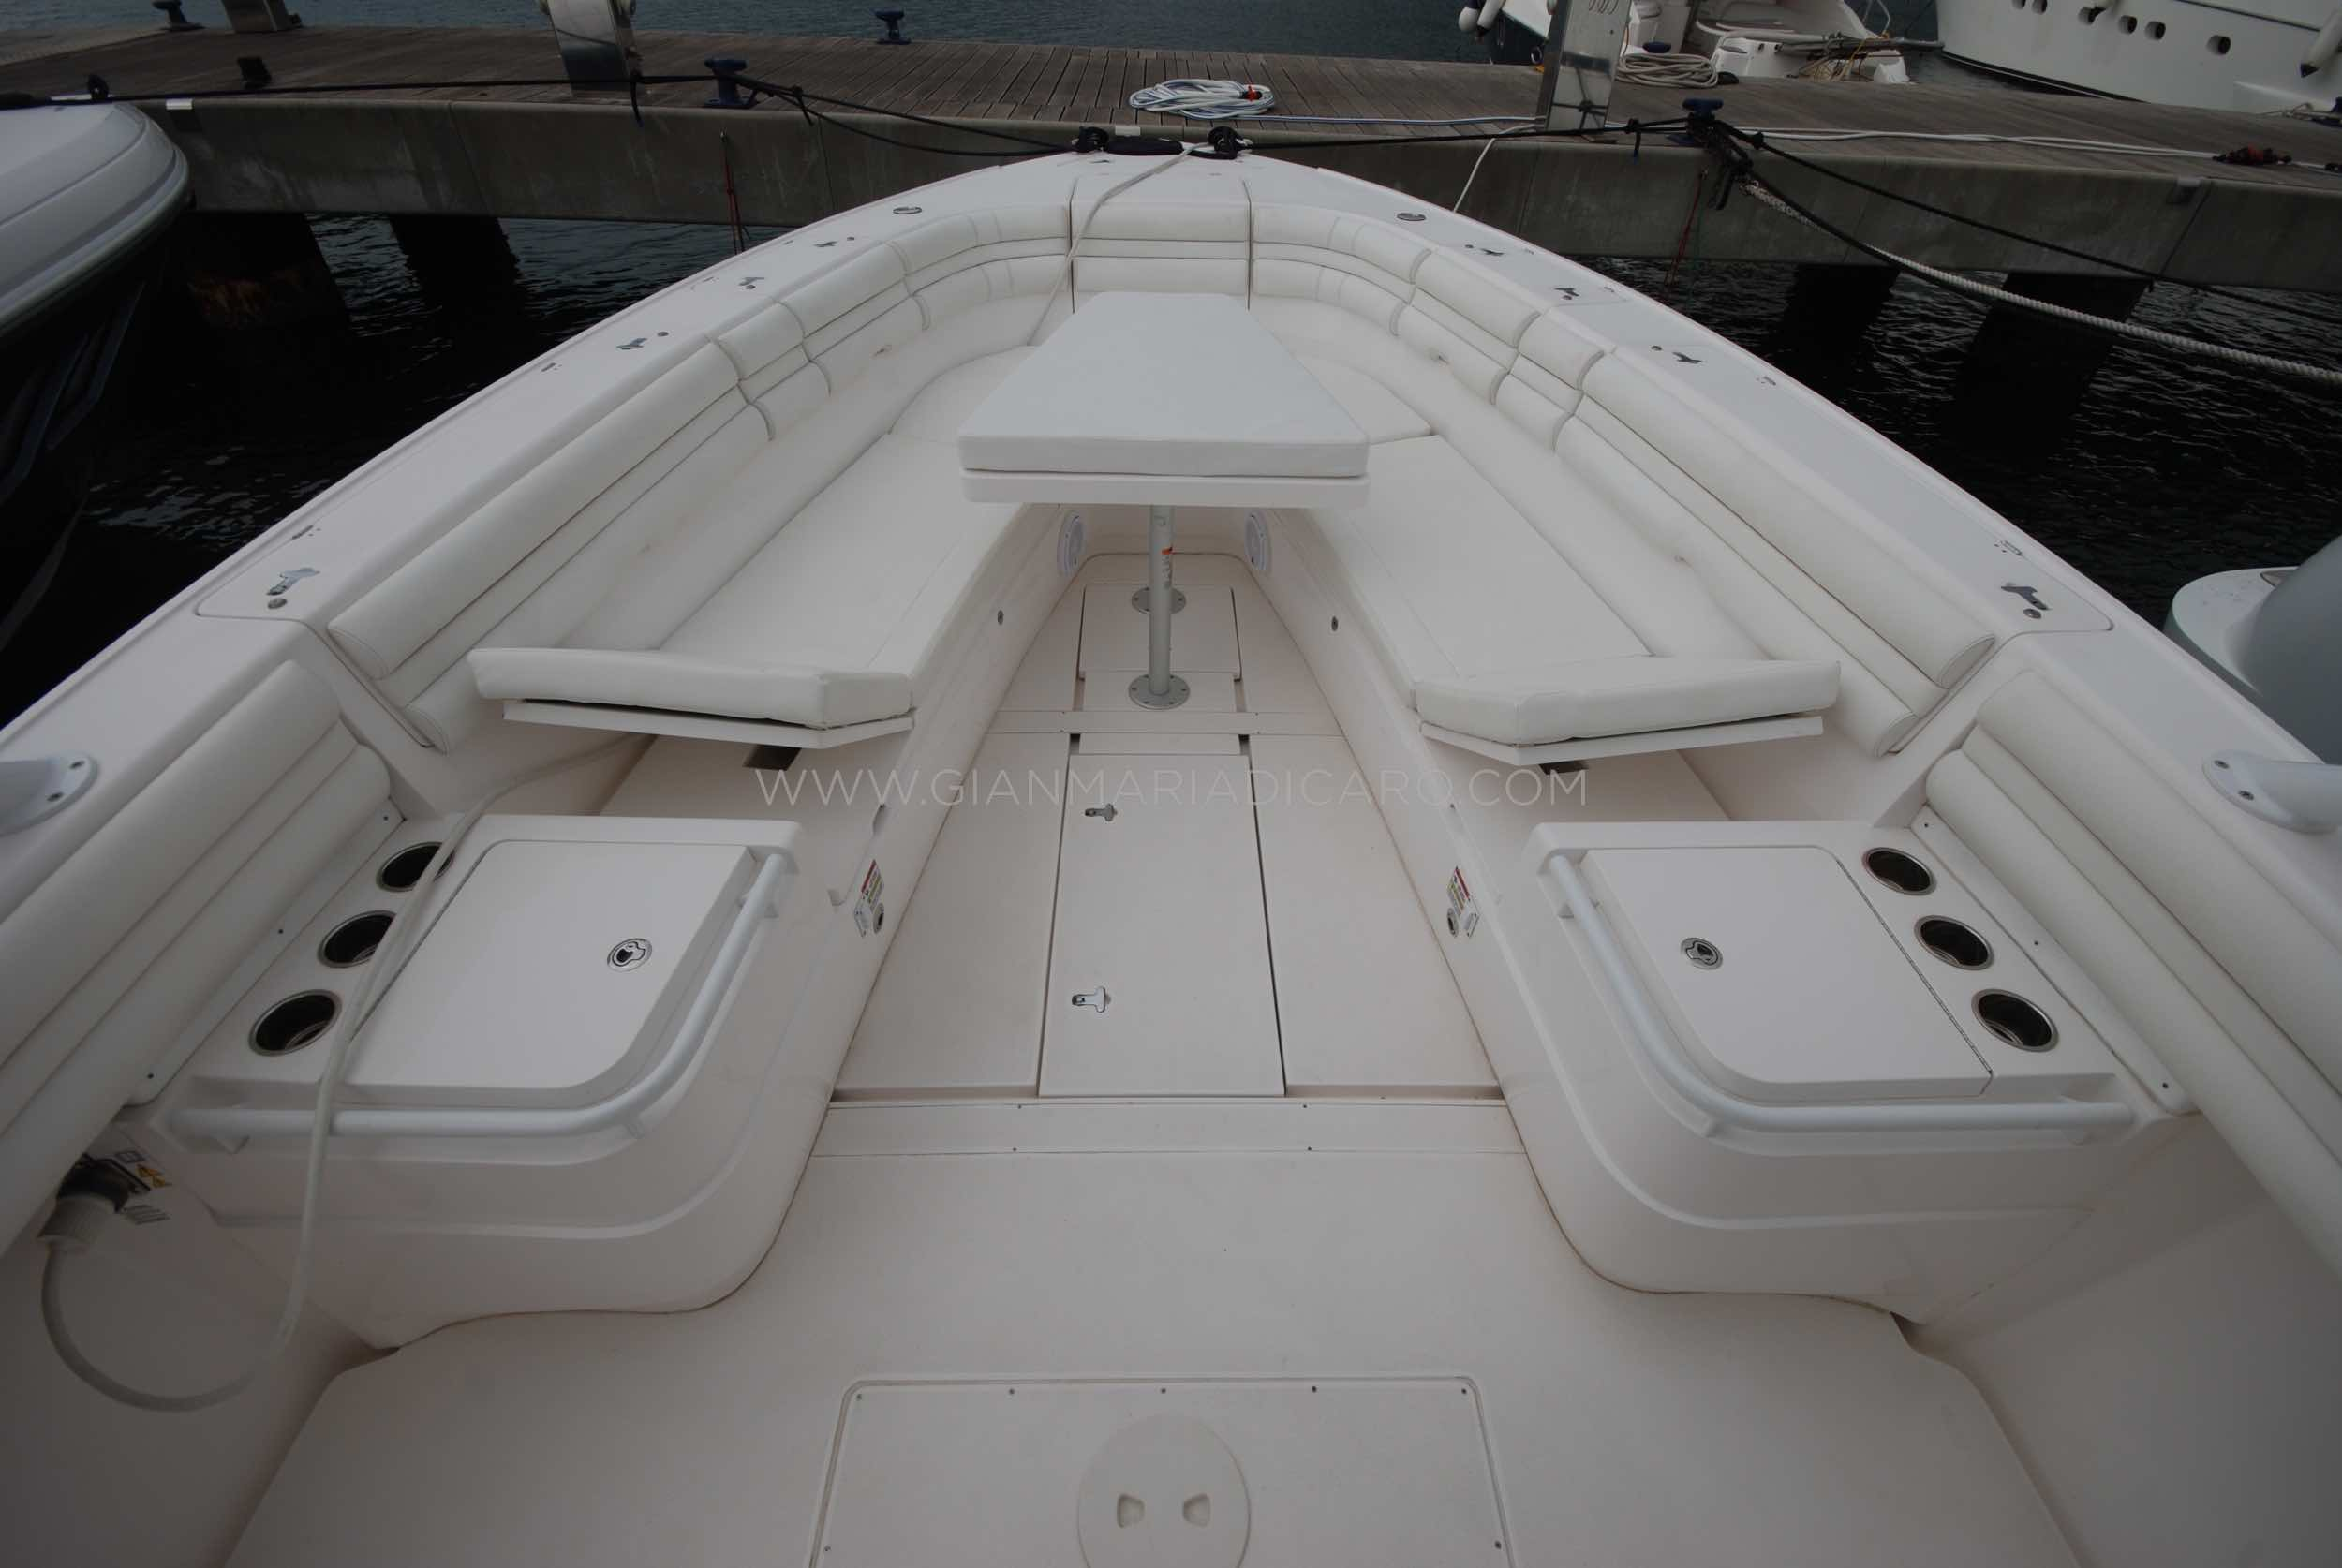 intrepid-400-centre-console-z-blonde-for-sale-14.jpg